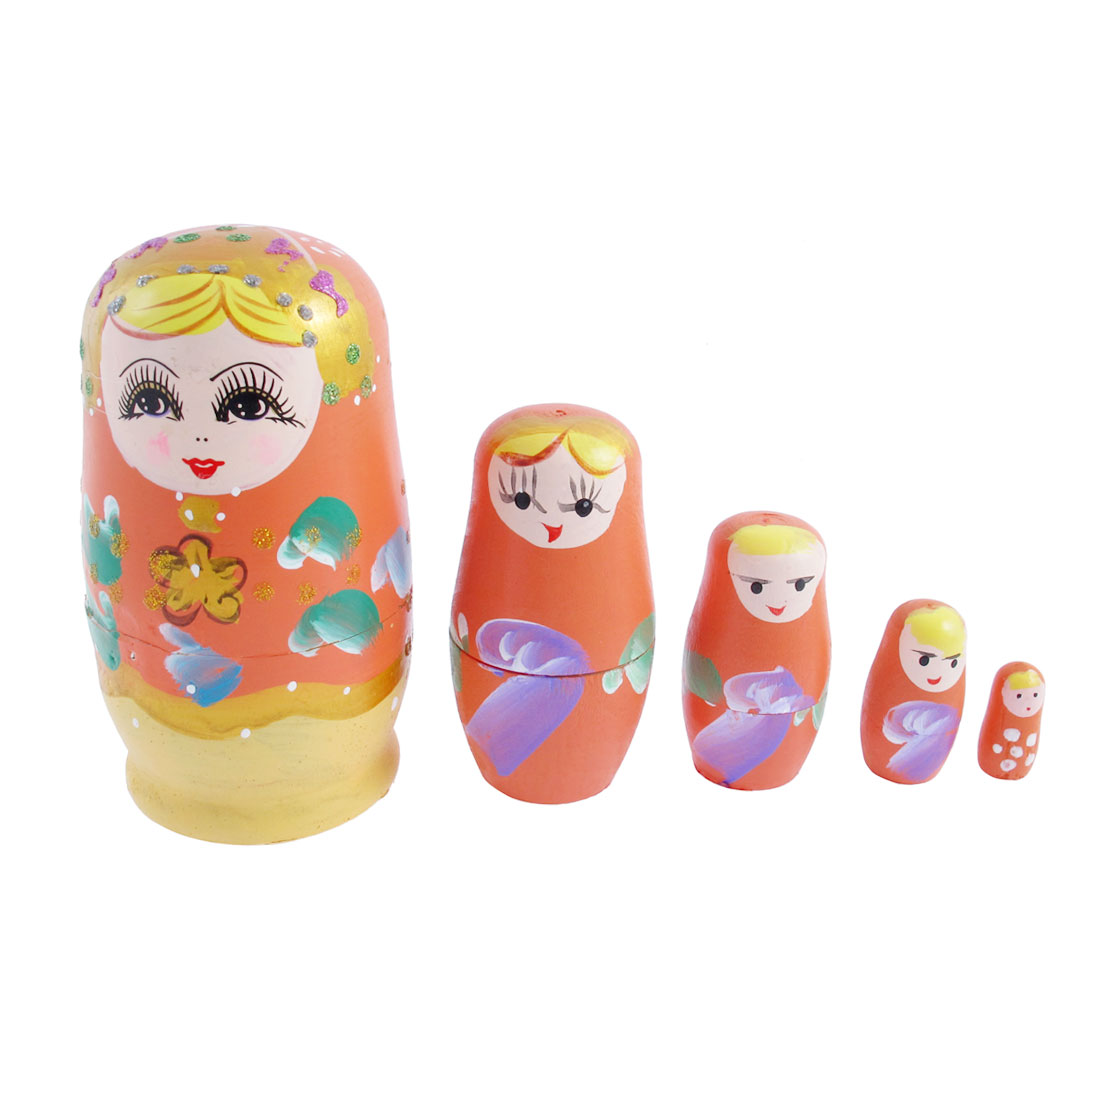 Russian Babushka Hand Painted Stacking Nesting Matryoshka Doll Orange 5 in 1